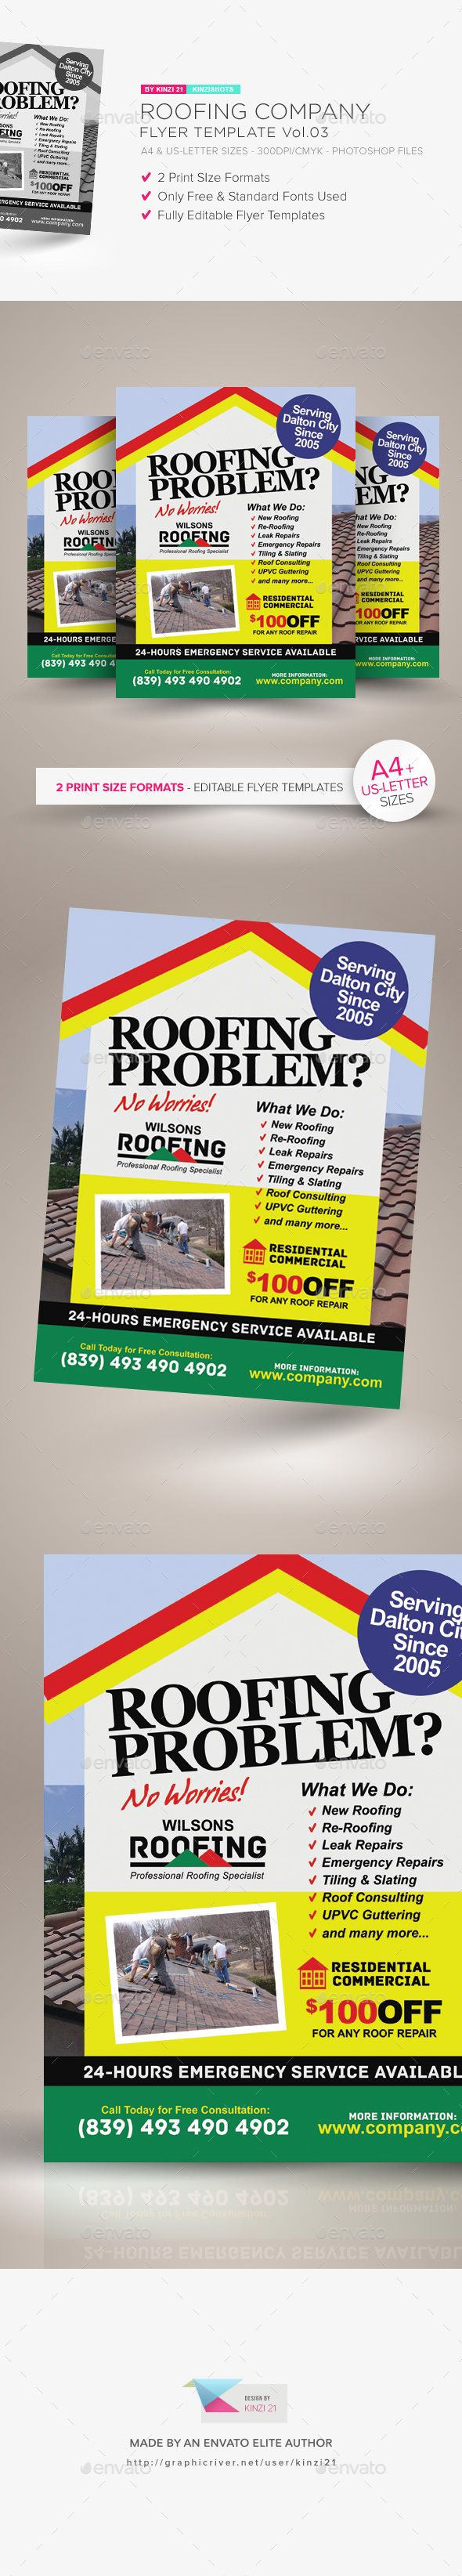 Roofing Company Flyer Template Vol.03 — Photoshop PSD #pamphlet #plumbing • Download ➝ https://graphicriver.net/item/roofing-company-flyer-template-vol03/21187573?ref=pxcr